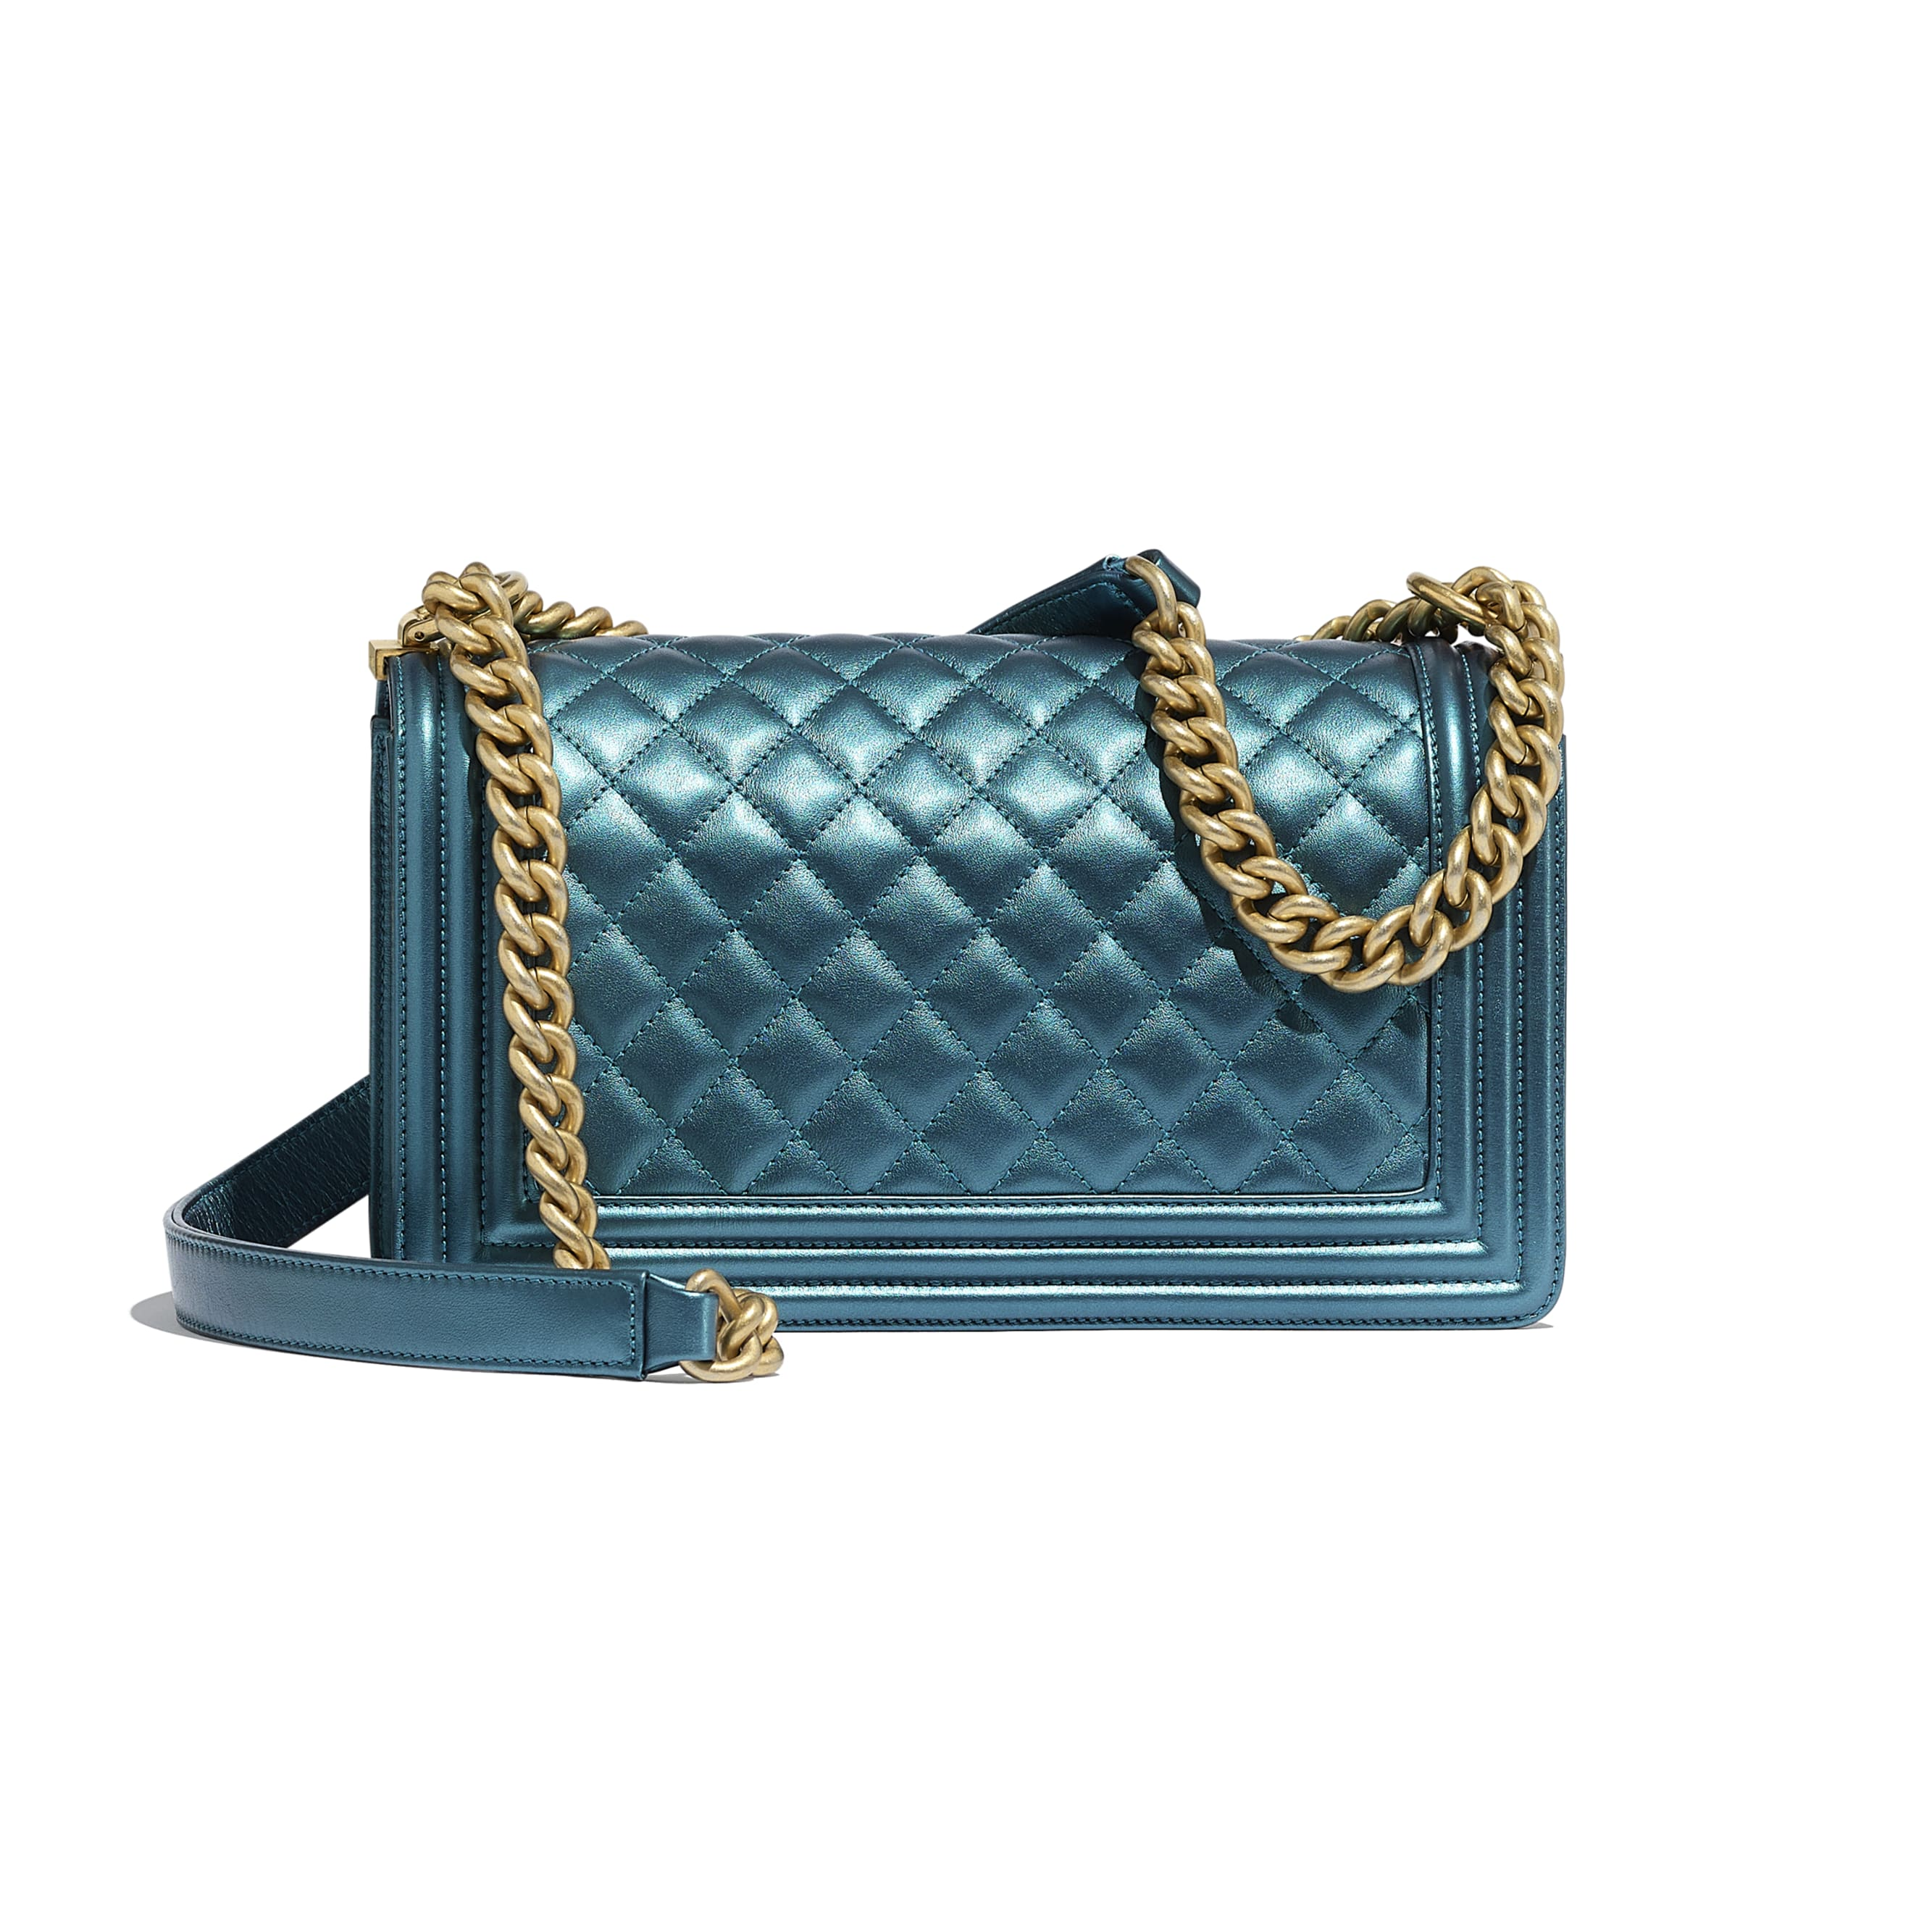 BOY CHANEL Handbag - Navy Blue - Metallic Calfskin & Gold Metal - CHANEL - Alternative view - see standard sized version